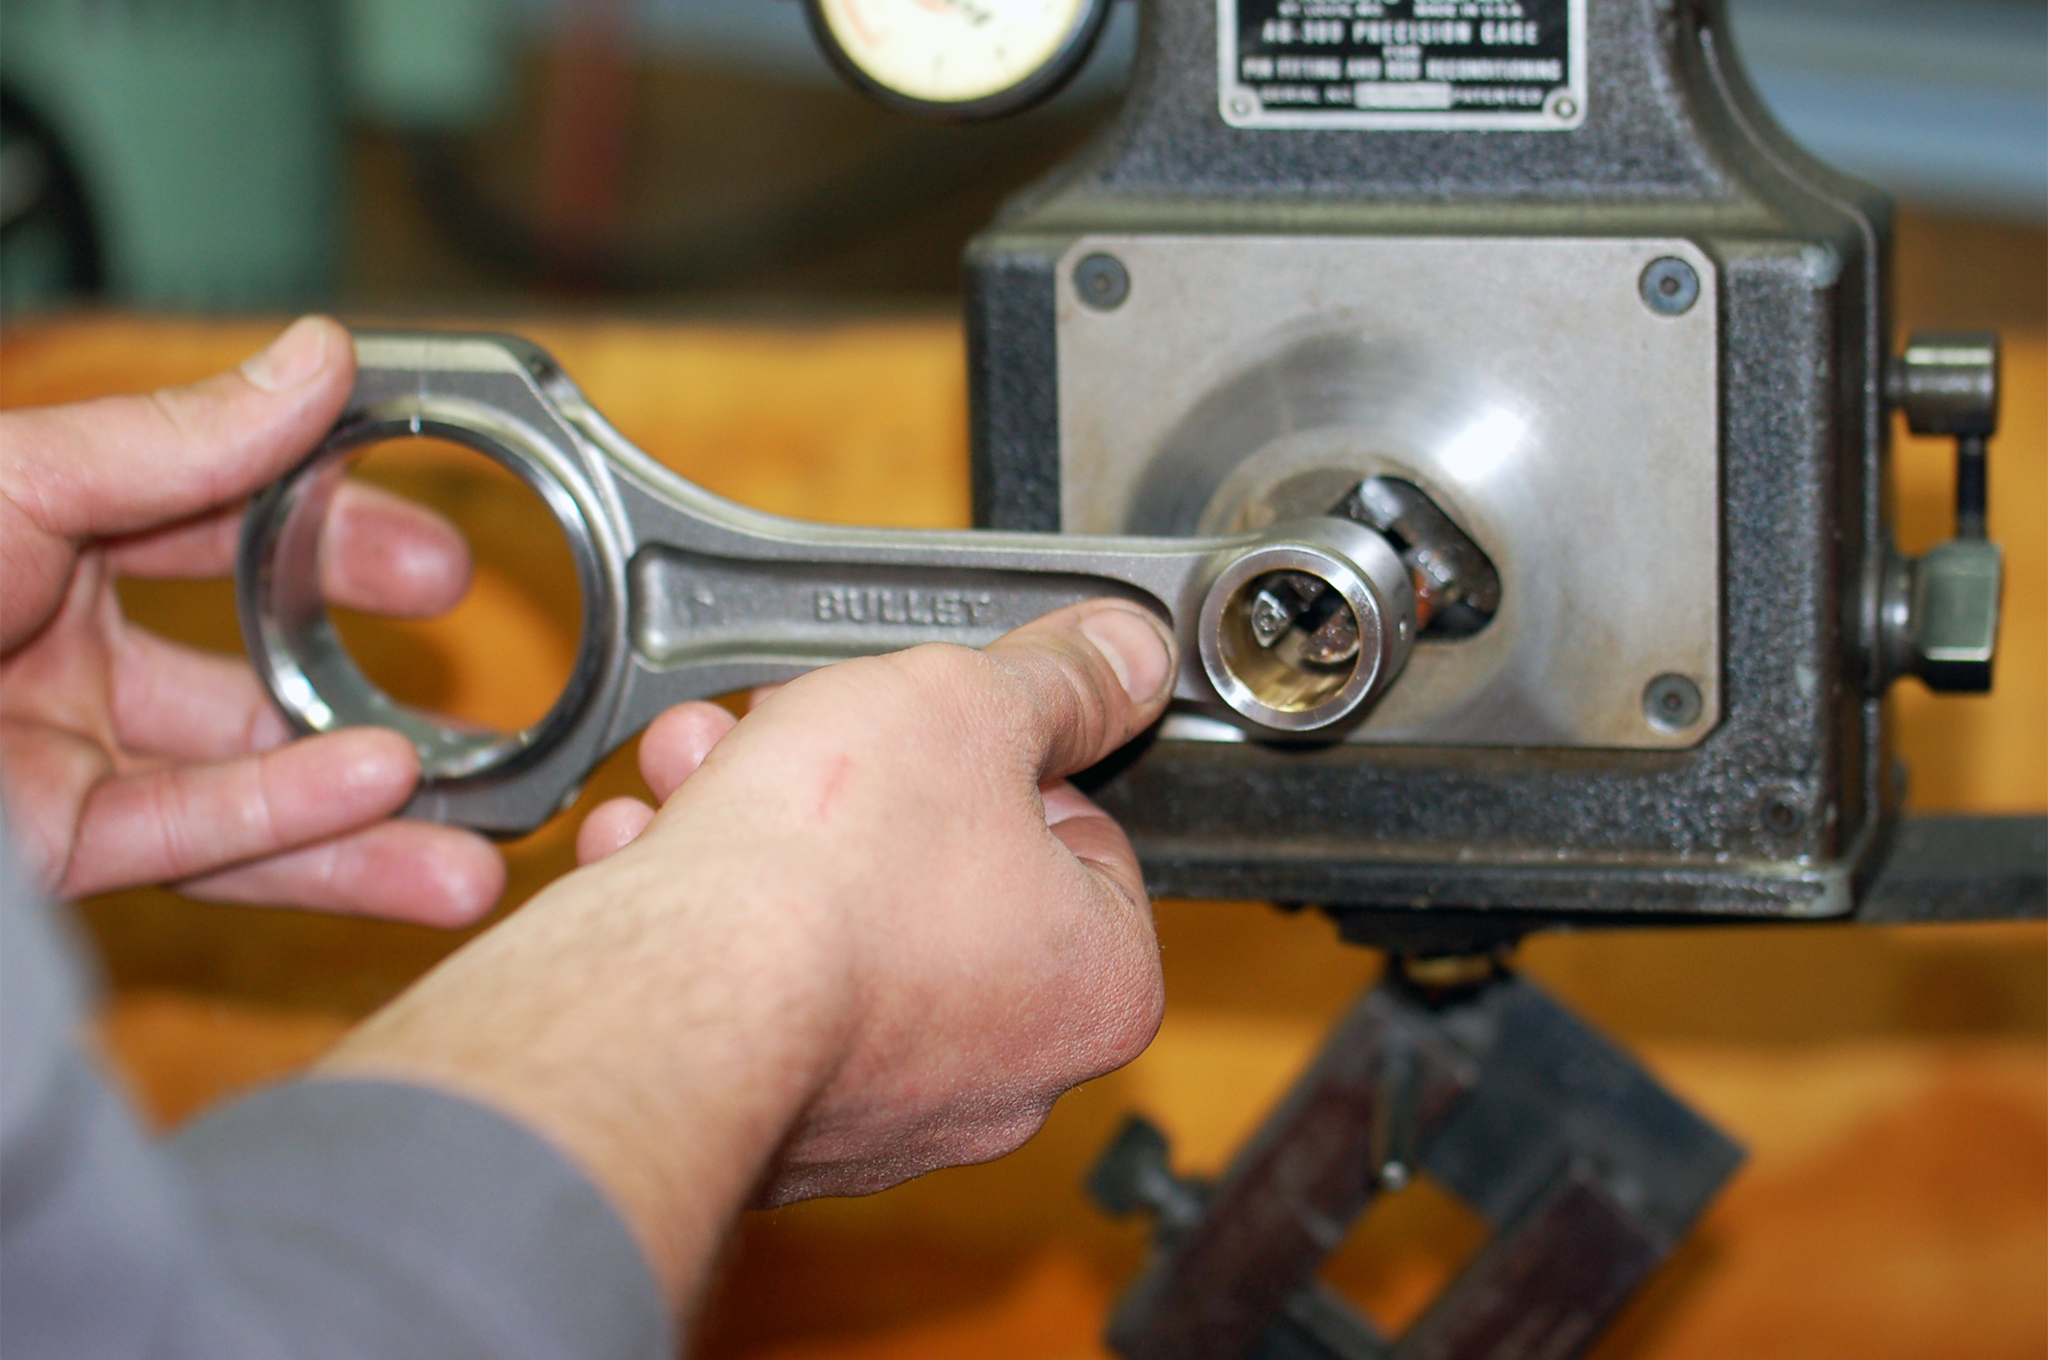 To match the wrist pin diameter to the rod bore, we carefully resize the bore for a perfect fit of 0.0005.